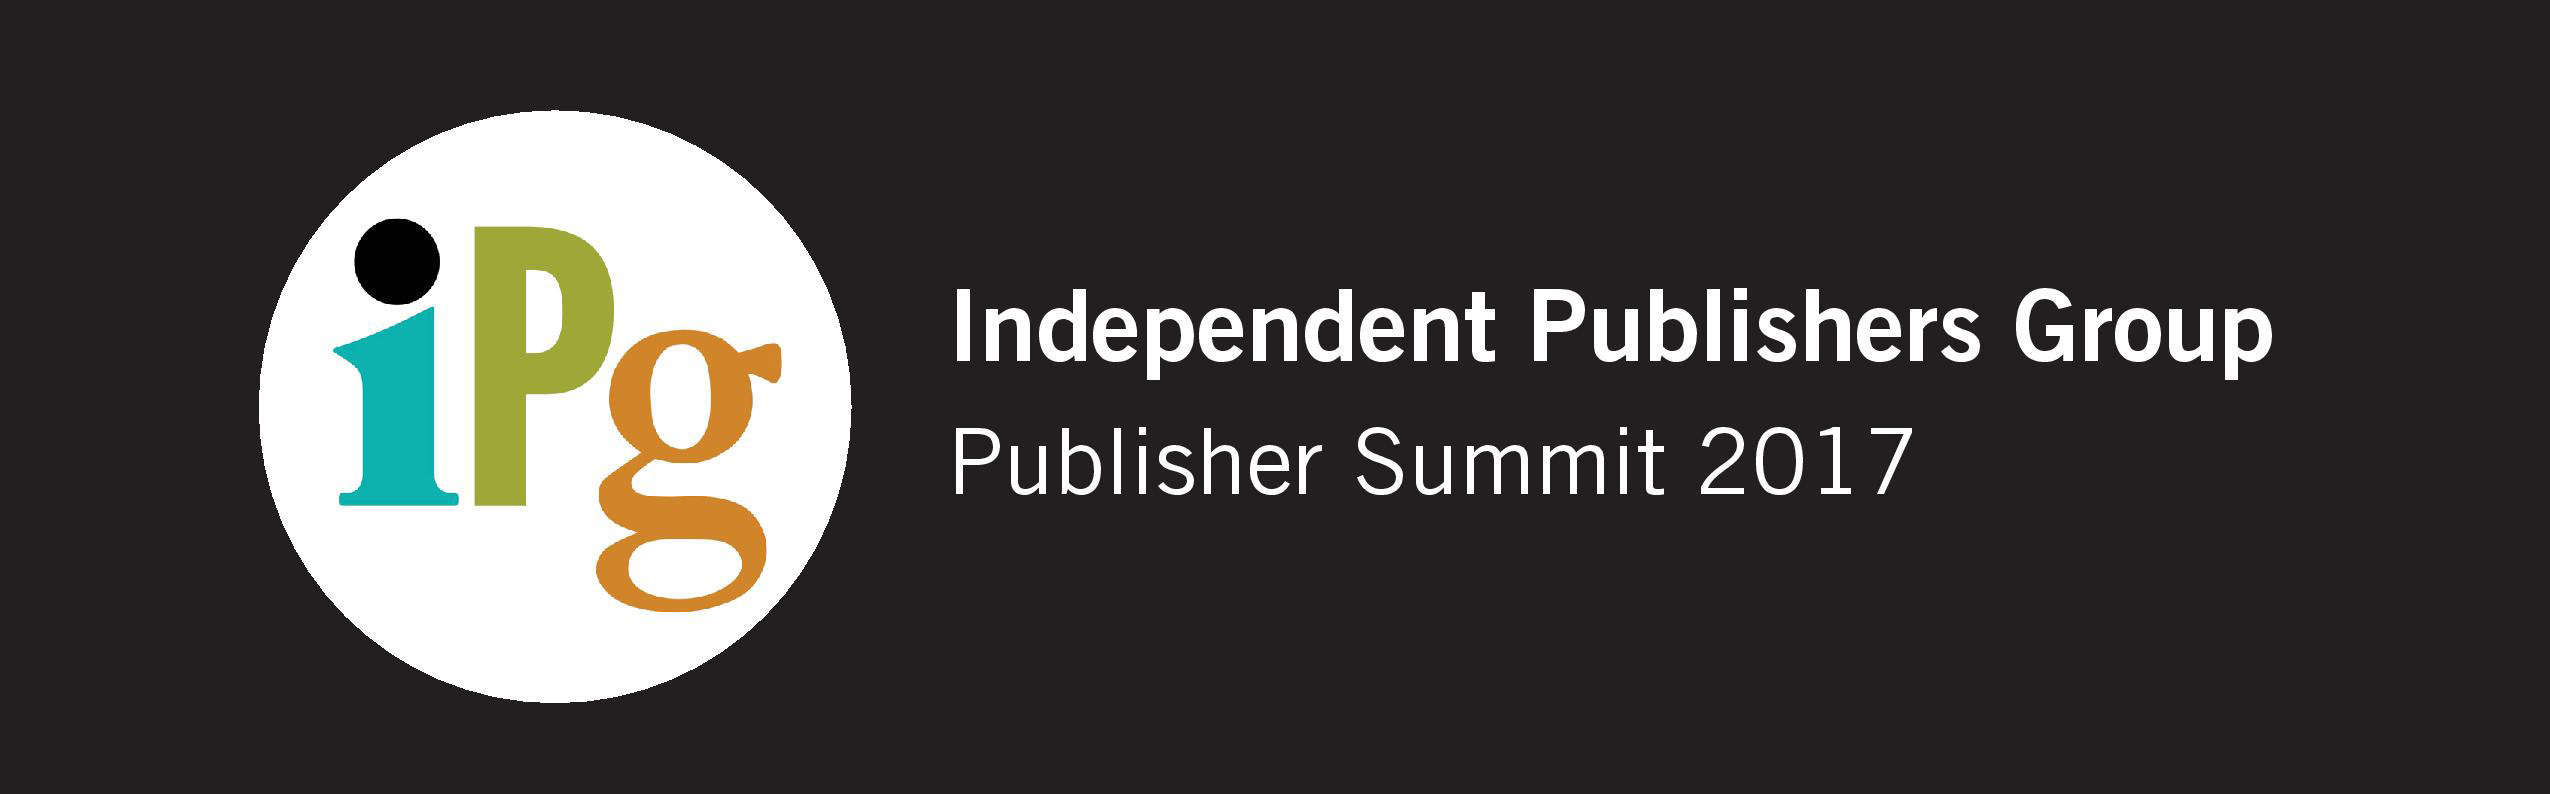 IPG Publisher Summit 2017